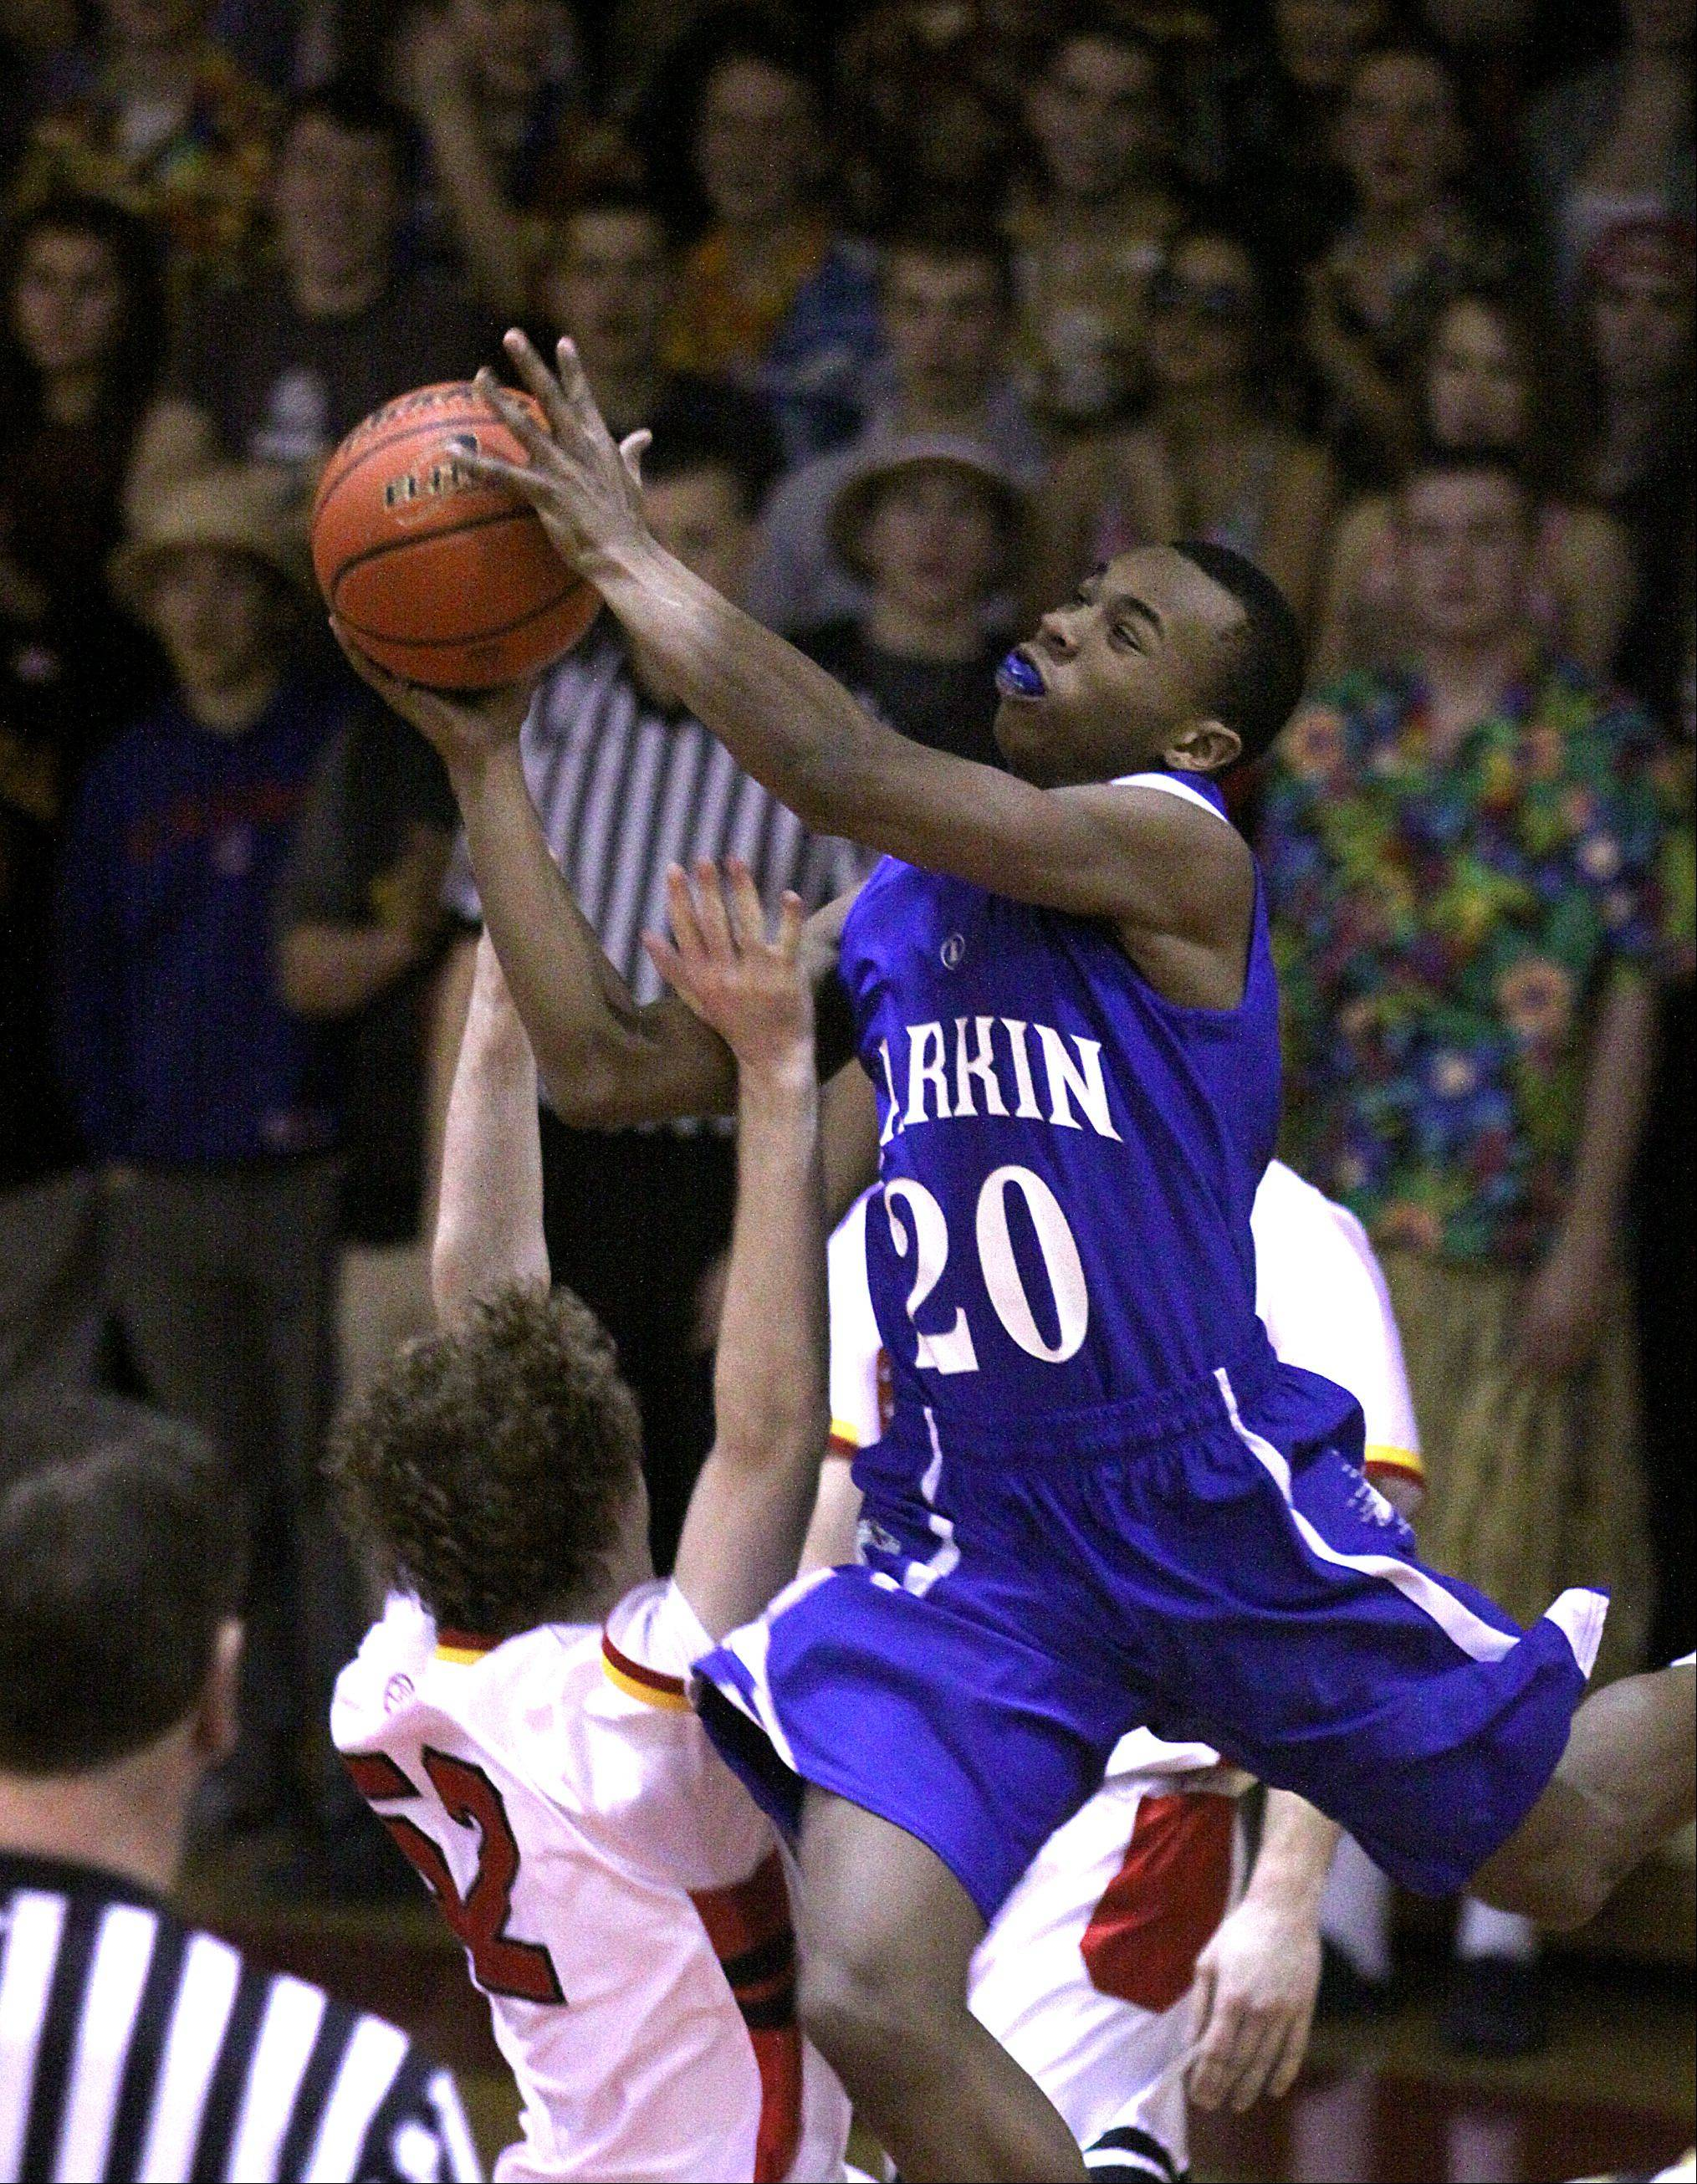 Larkin's Quentin Ruff soars toward the hoop during a varsity basketball game at Batavia on Thursday night.